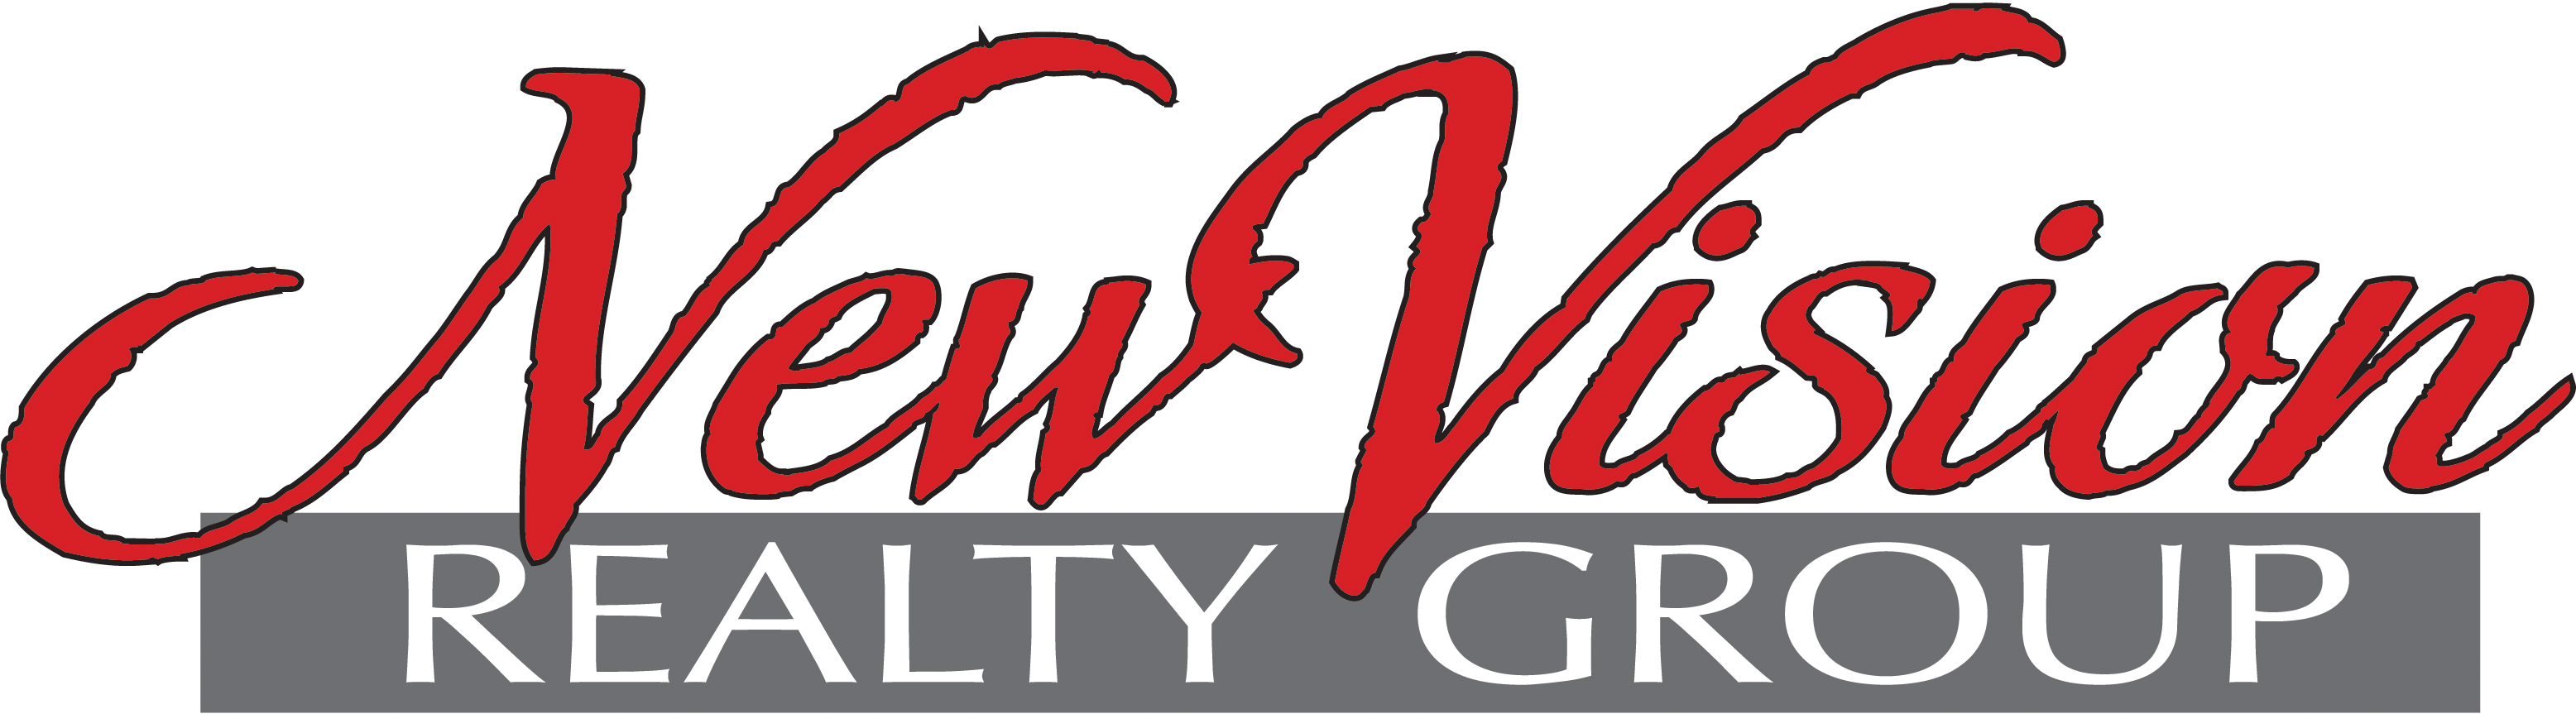 BUSINESS-New Vision Realty Group